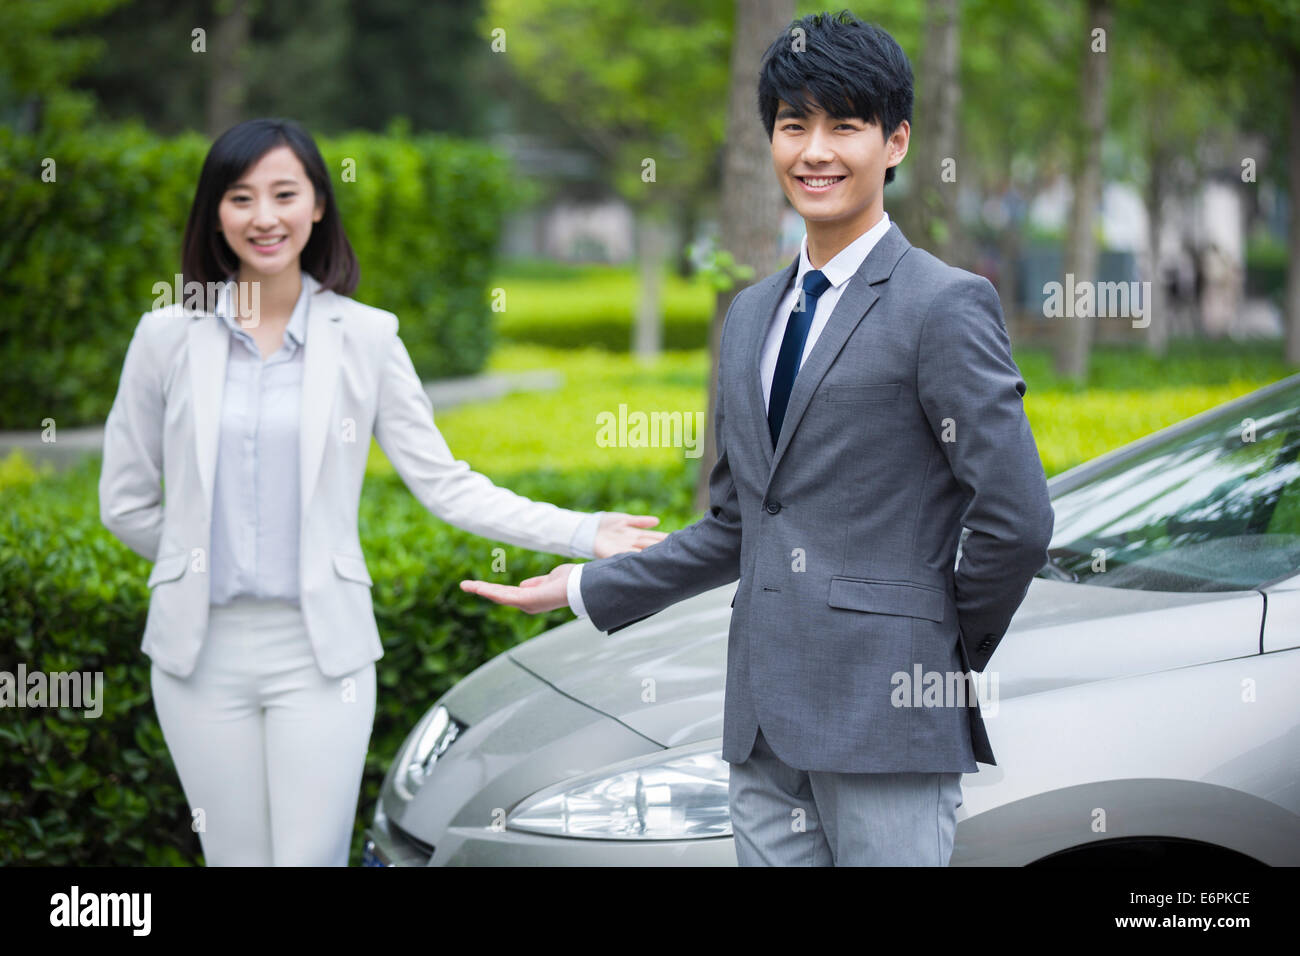 Young business person doing welcome gesture Stock Photo